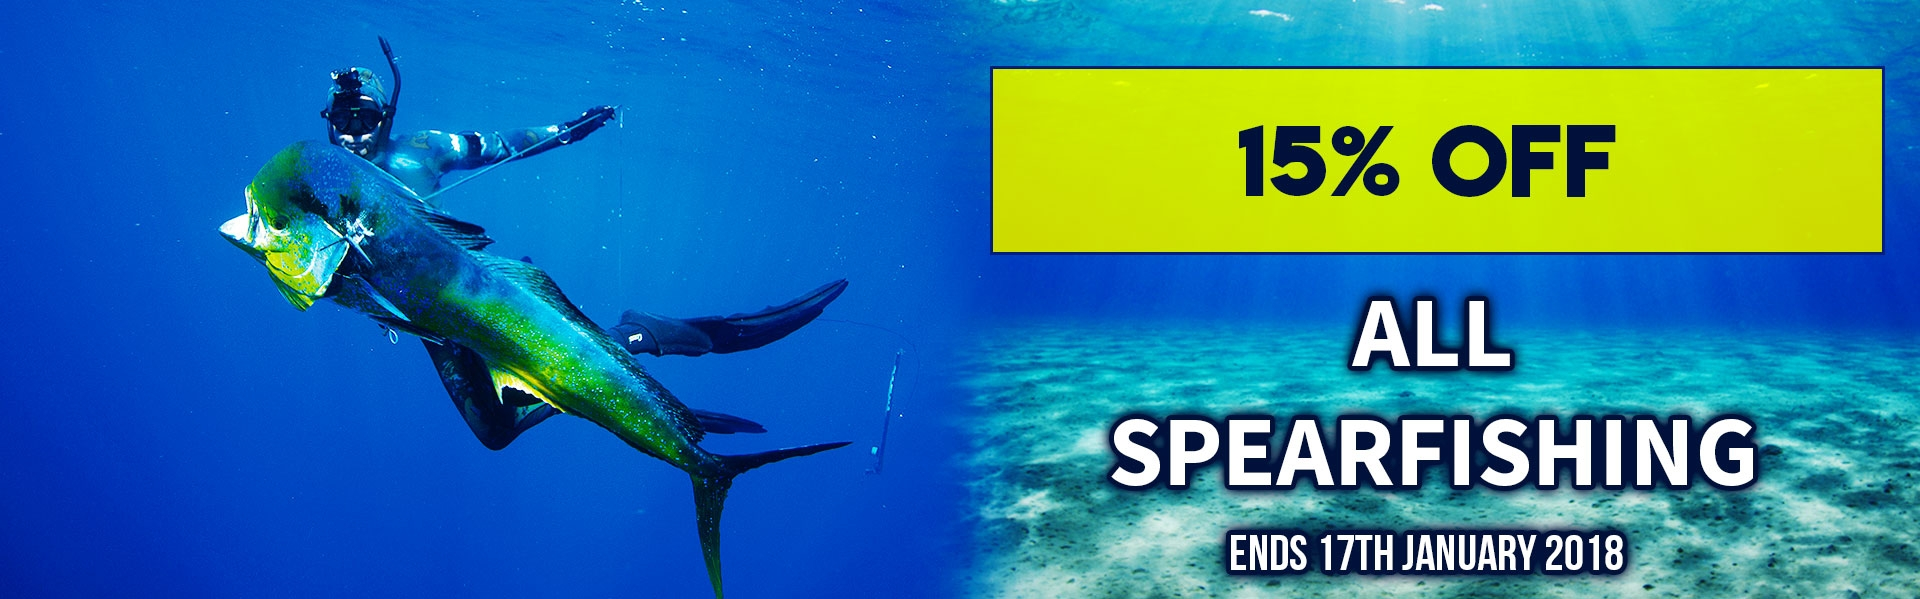 15% off Spearfishing